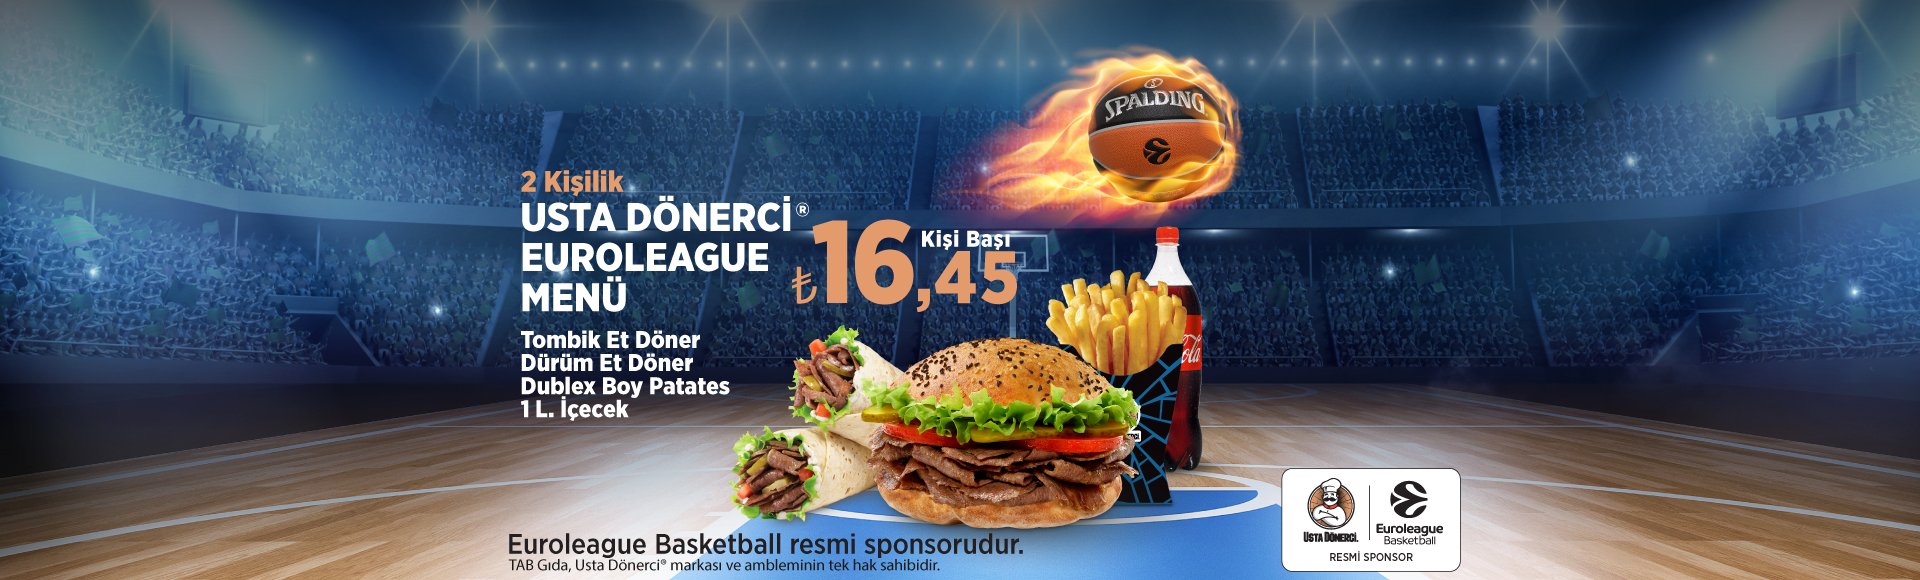 Euroleague MEnü